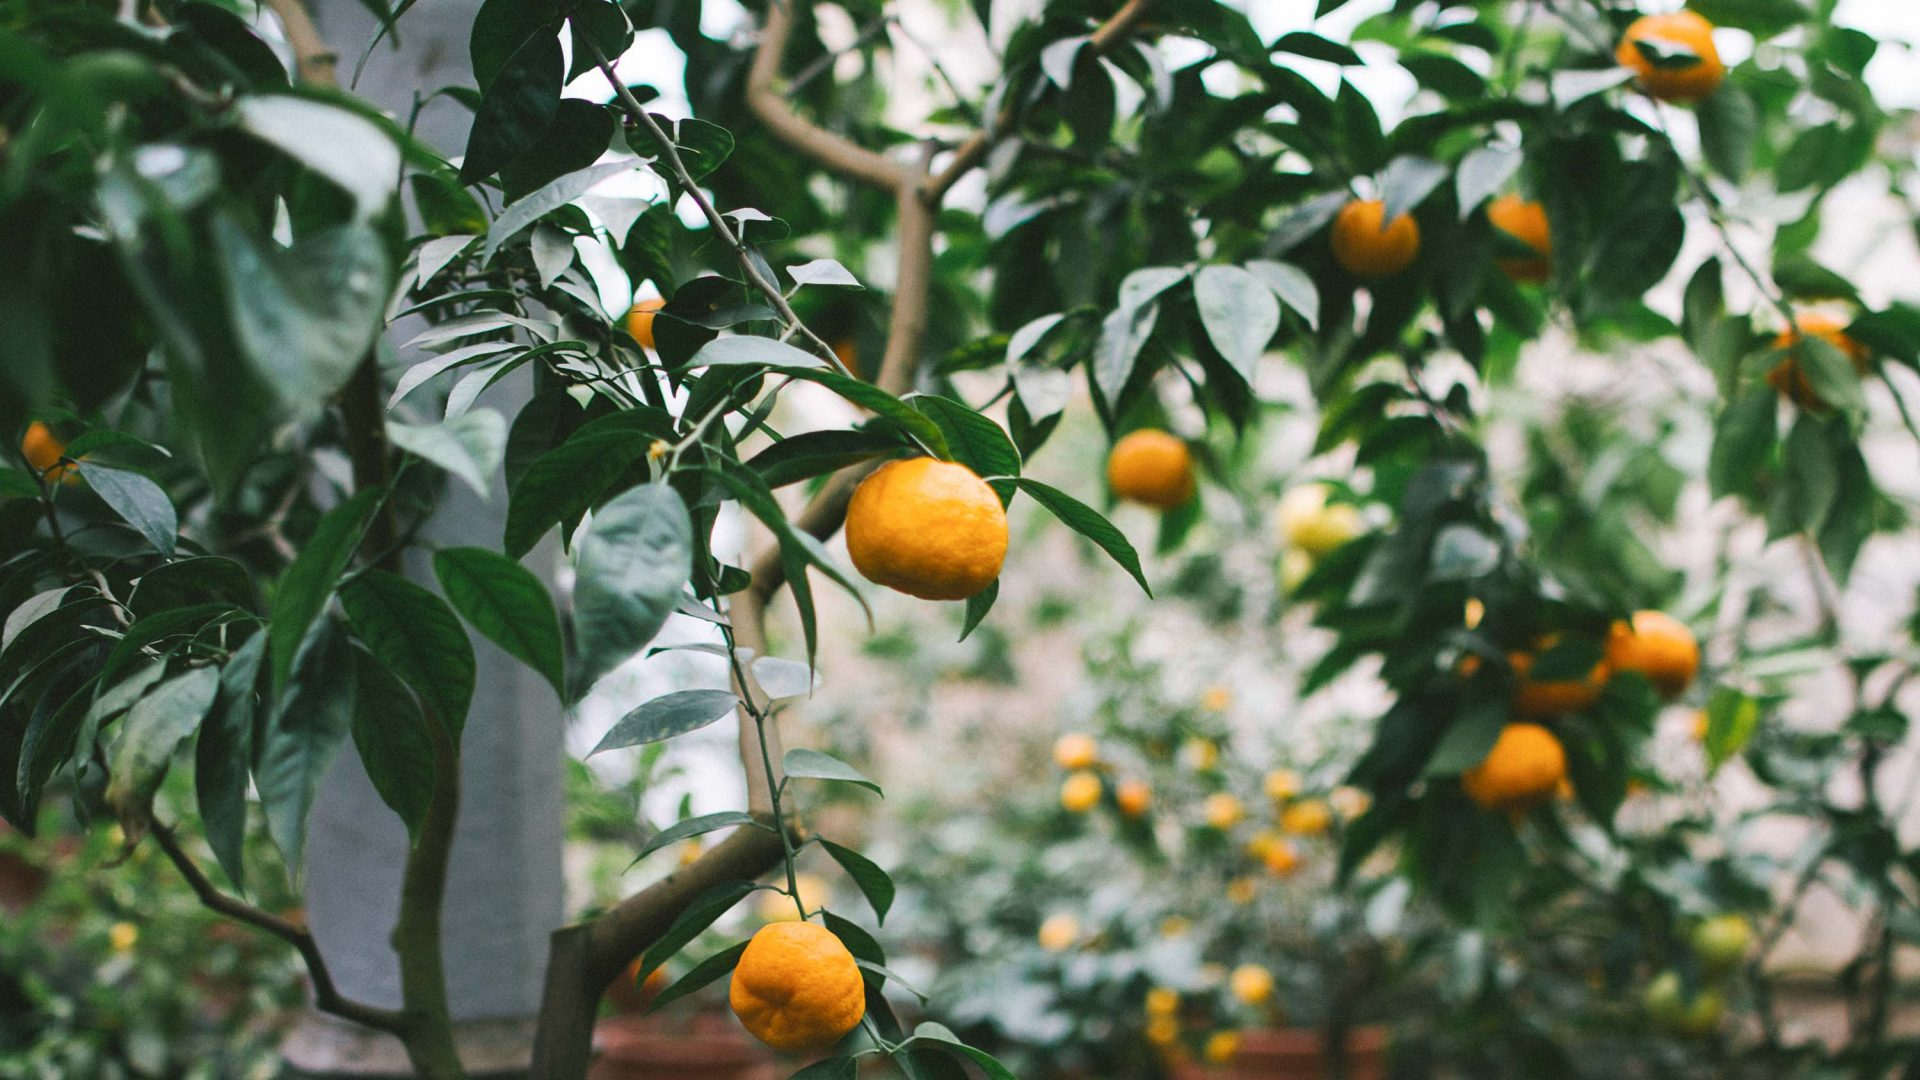 Oranges ripe for the picking.